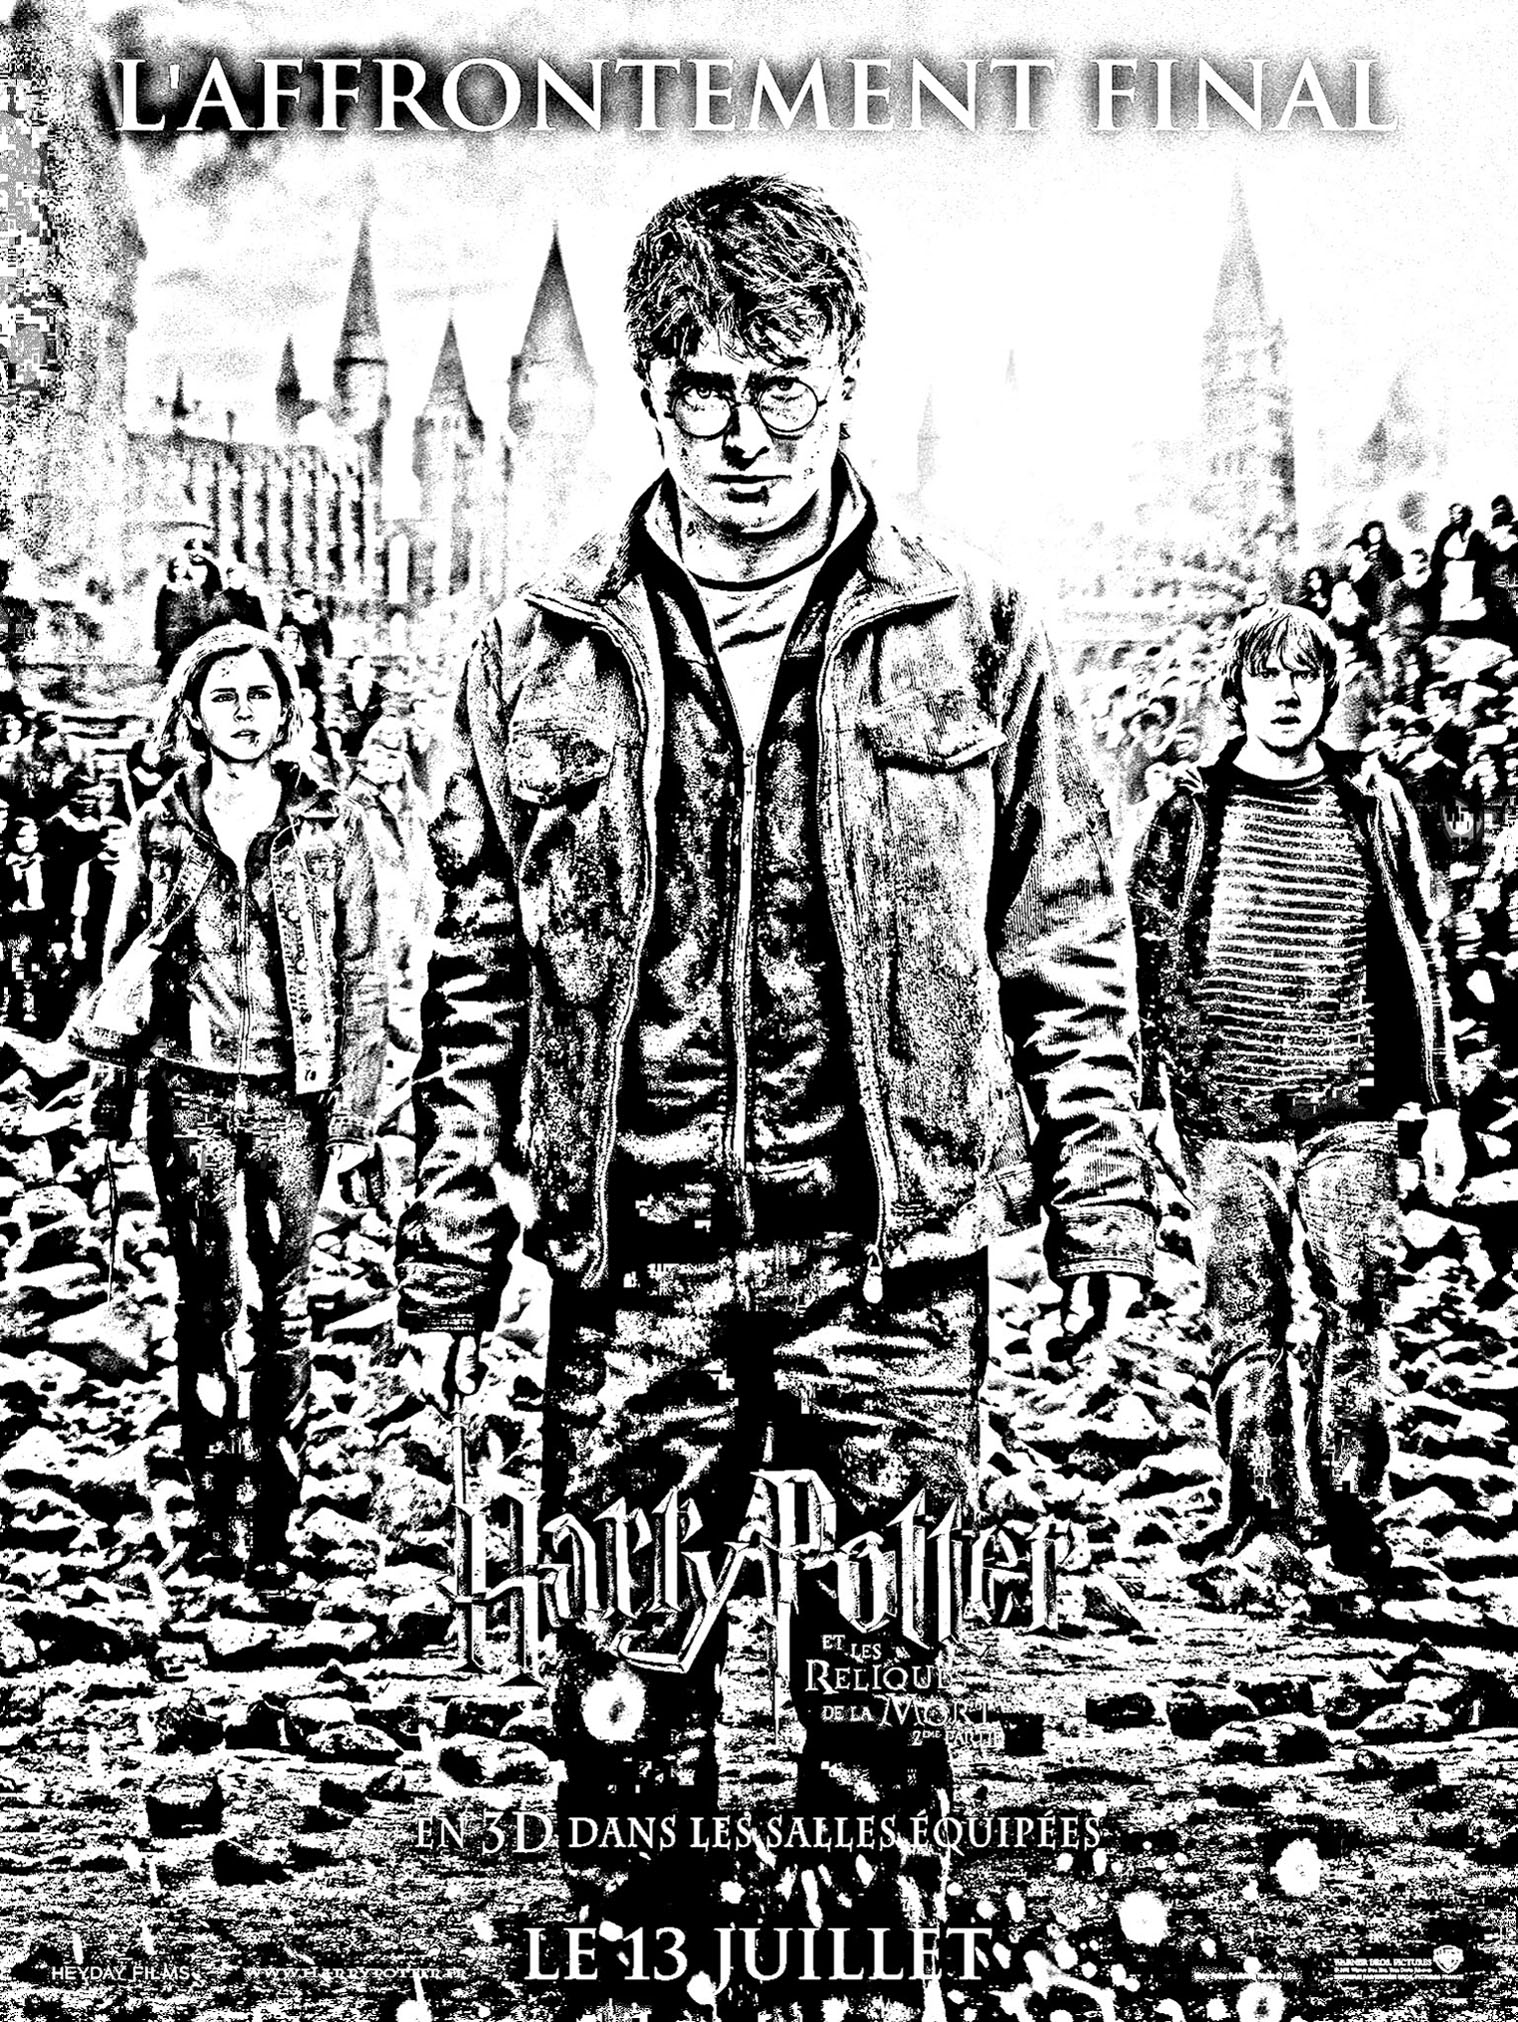 coloring movie harry potter 7 2 affiche free to print - Harry Potter Coloring Pages